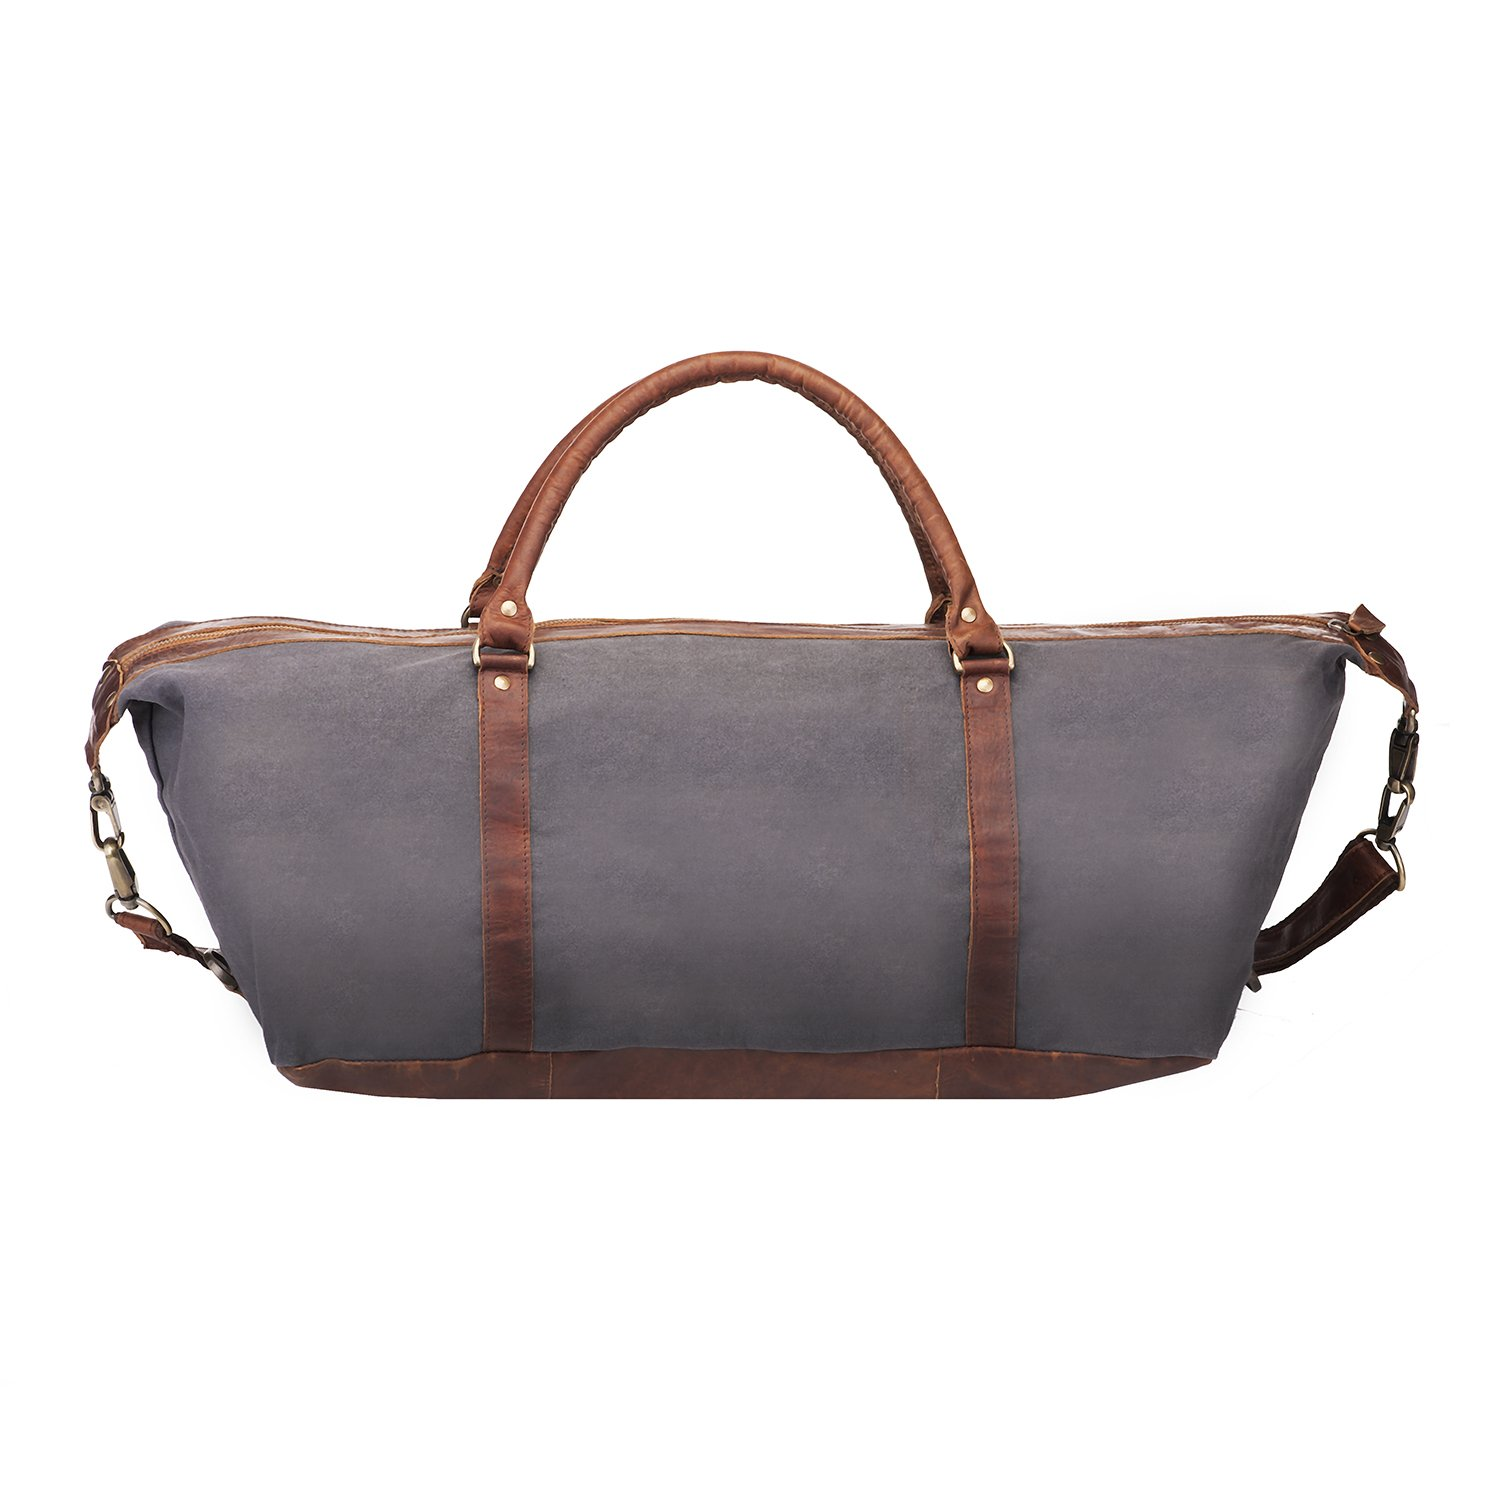 cfefbc4fc67e Canvas Leather Duffle Bag Overnight Bag Weekend Bag Gym Bag in Grey Canvas  and Brown Leather by MAHI Leather  Amazon.co.uk  Luggage